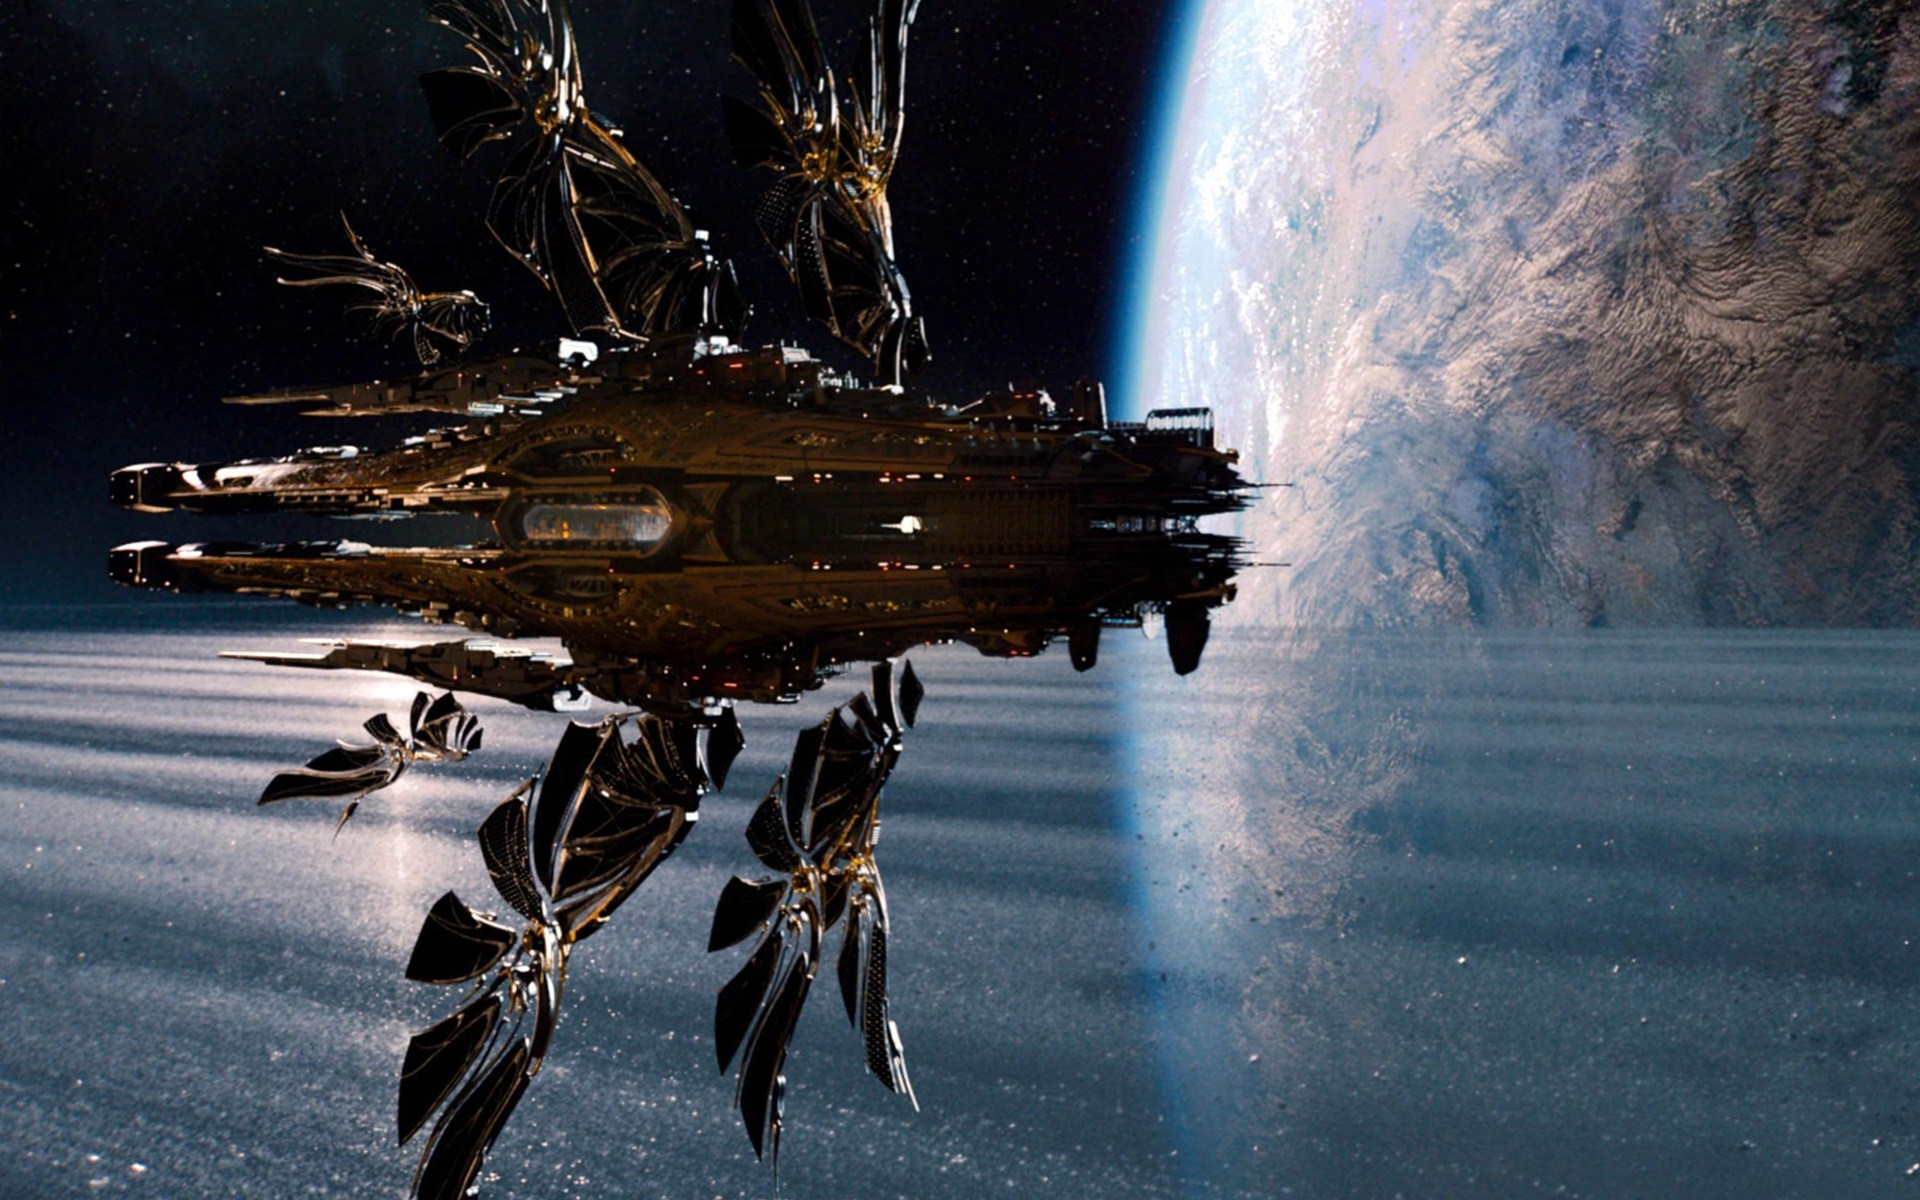 Home » Movies » Jupiter Ascending Space Wallpaper HD 1541